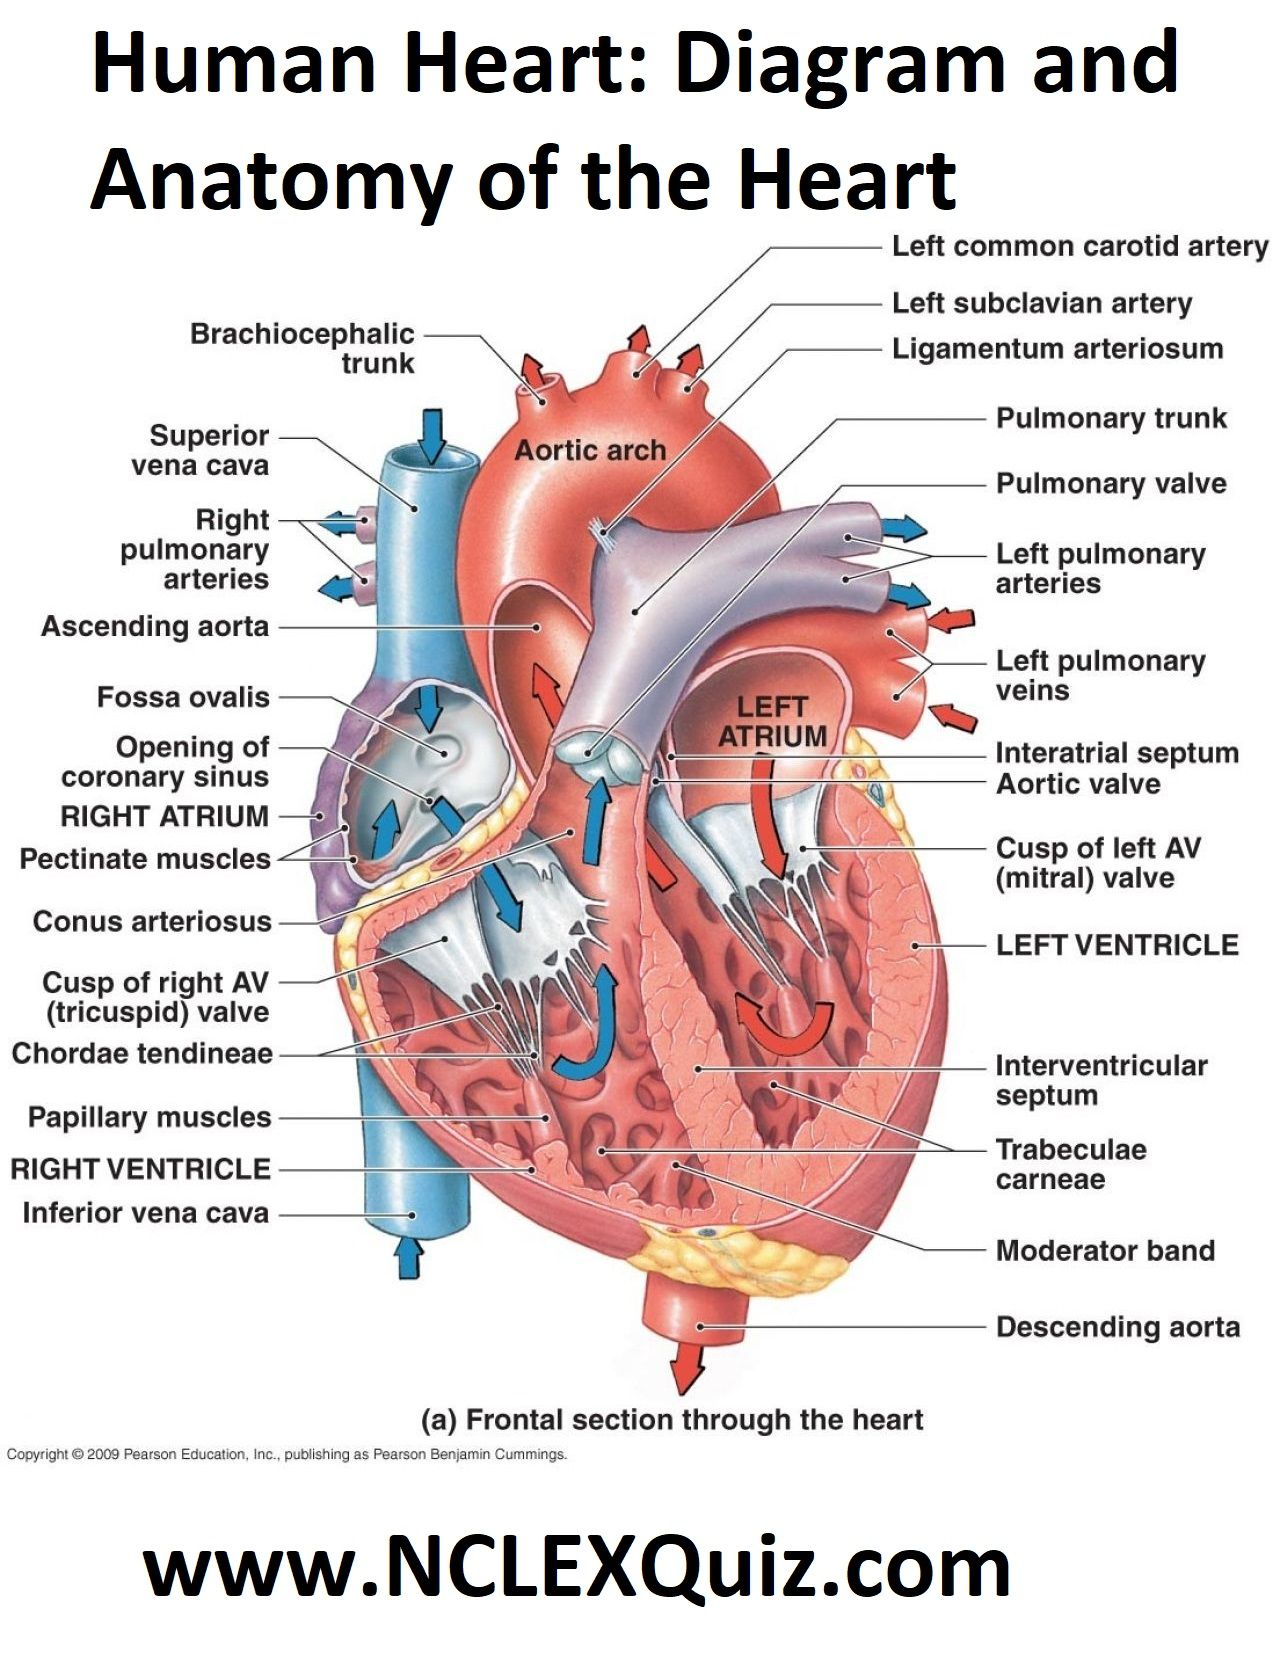 Human Heart Diagram And Anatomy Of The Heart